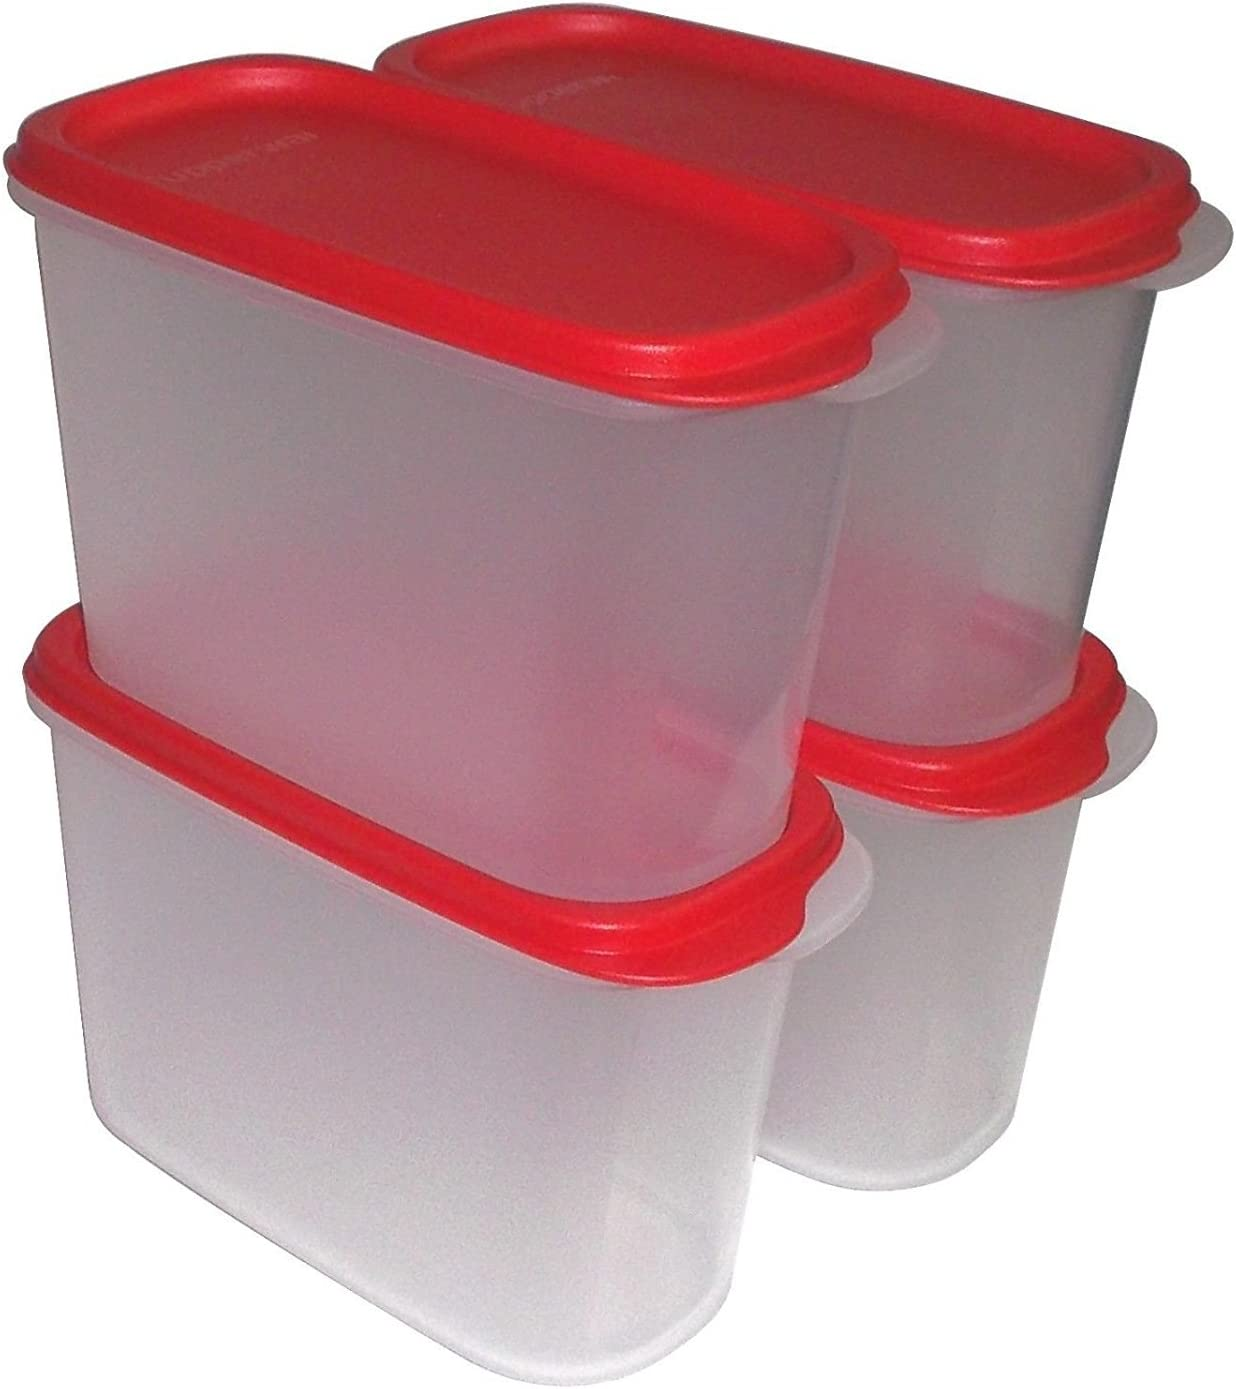 Tupperware New Smart Saver #3 (1.7 Ltrs) Set Of 4 (Red)